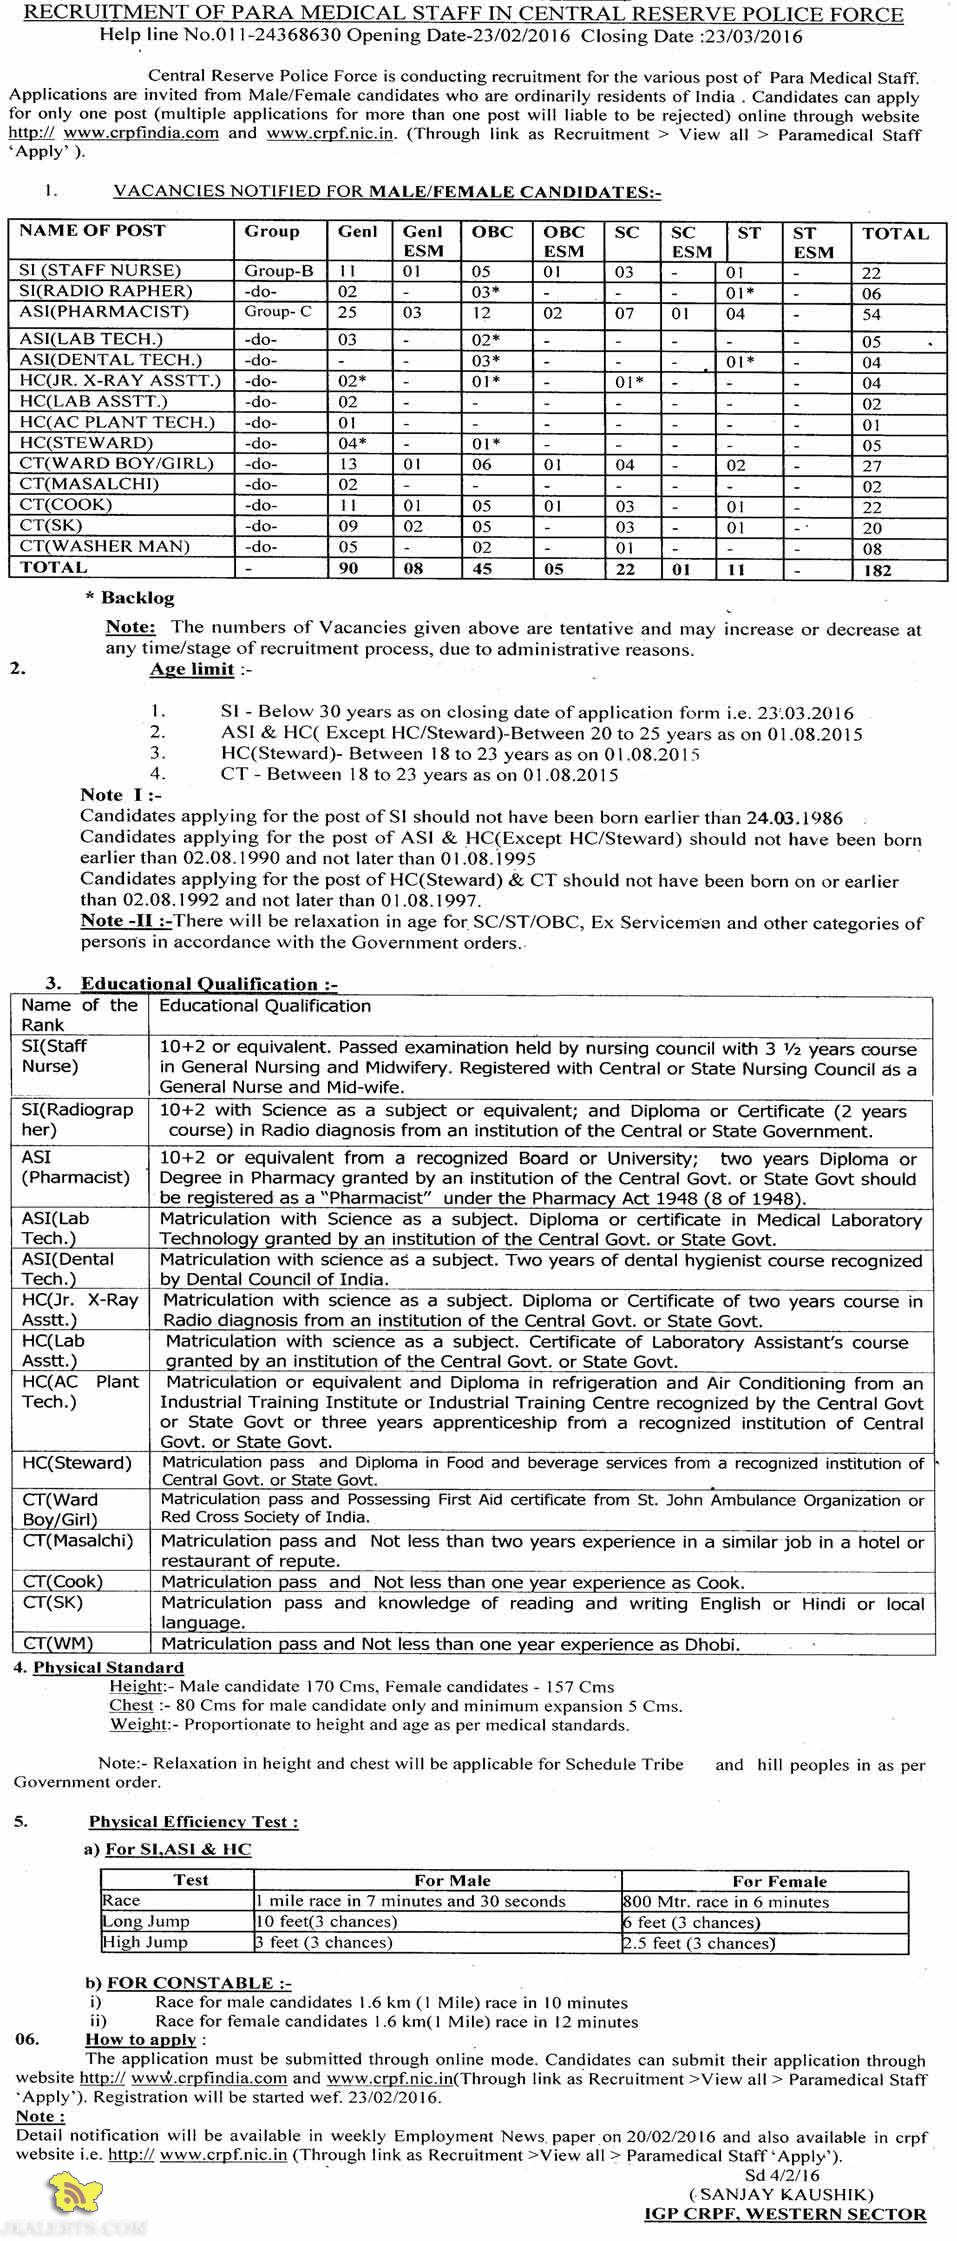 RECRUITMENT OF PARA MEDICAL STAFF IN CENTRAL RESERVE POLICE FORCE.